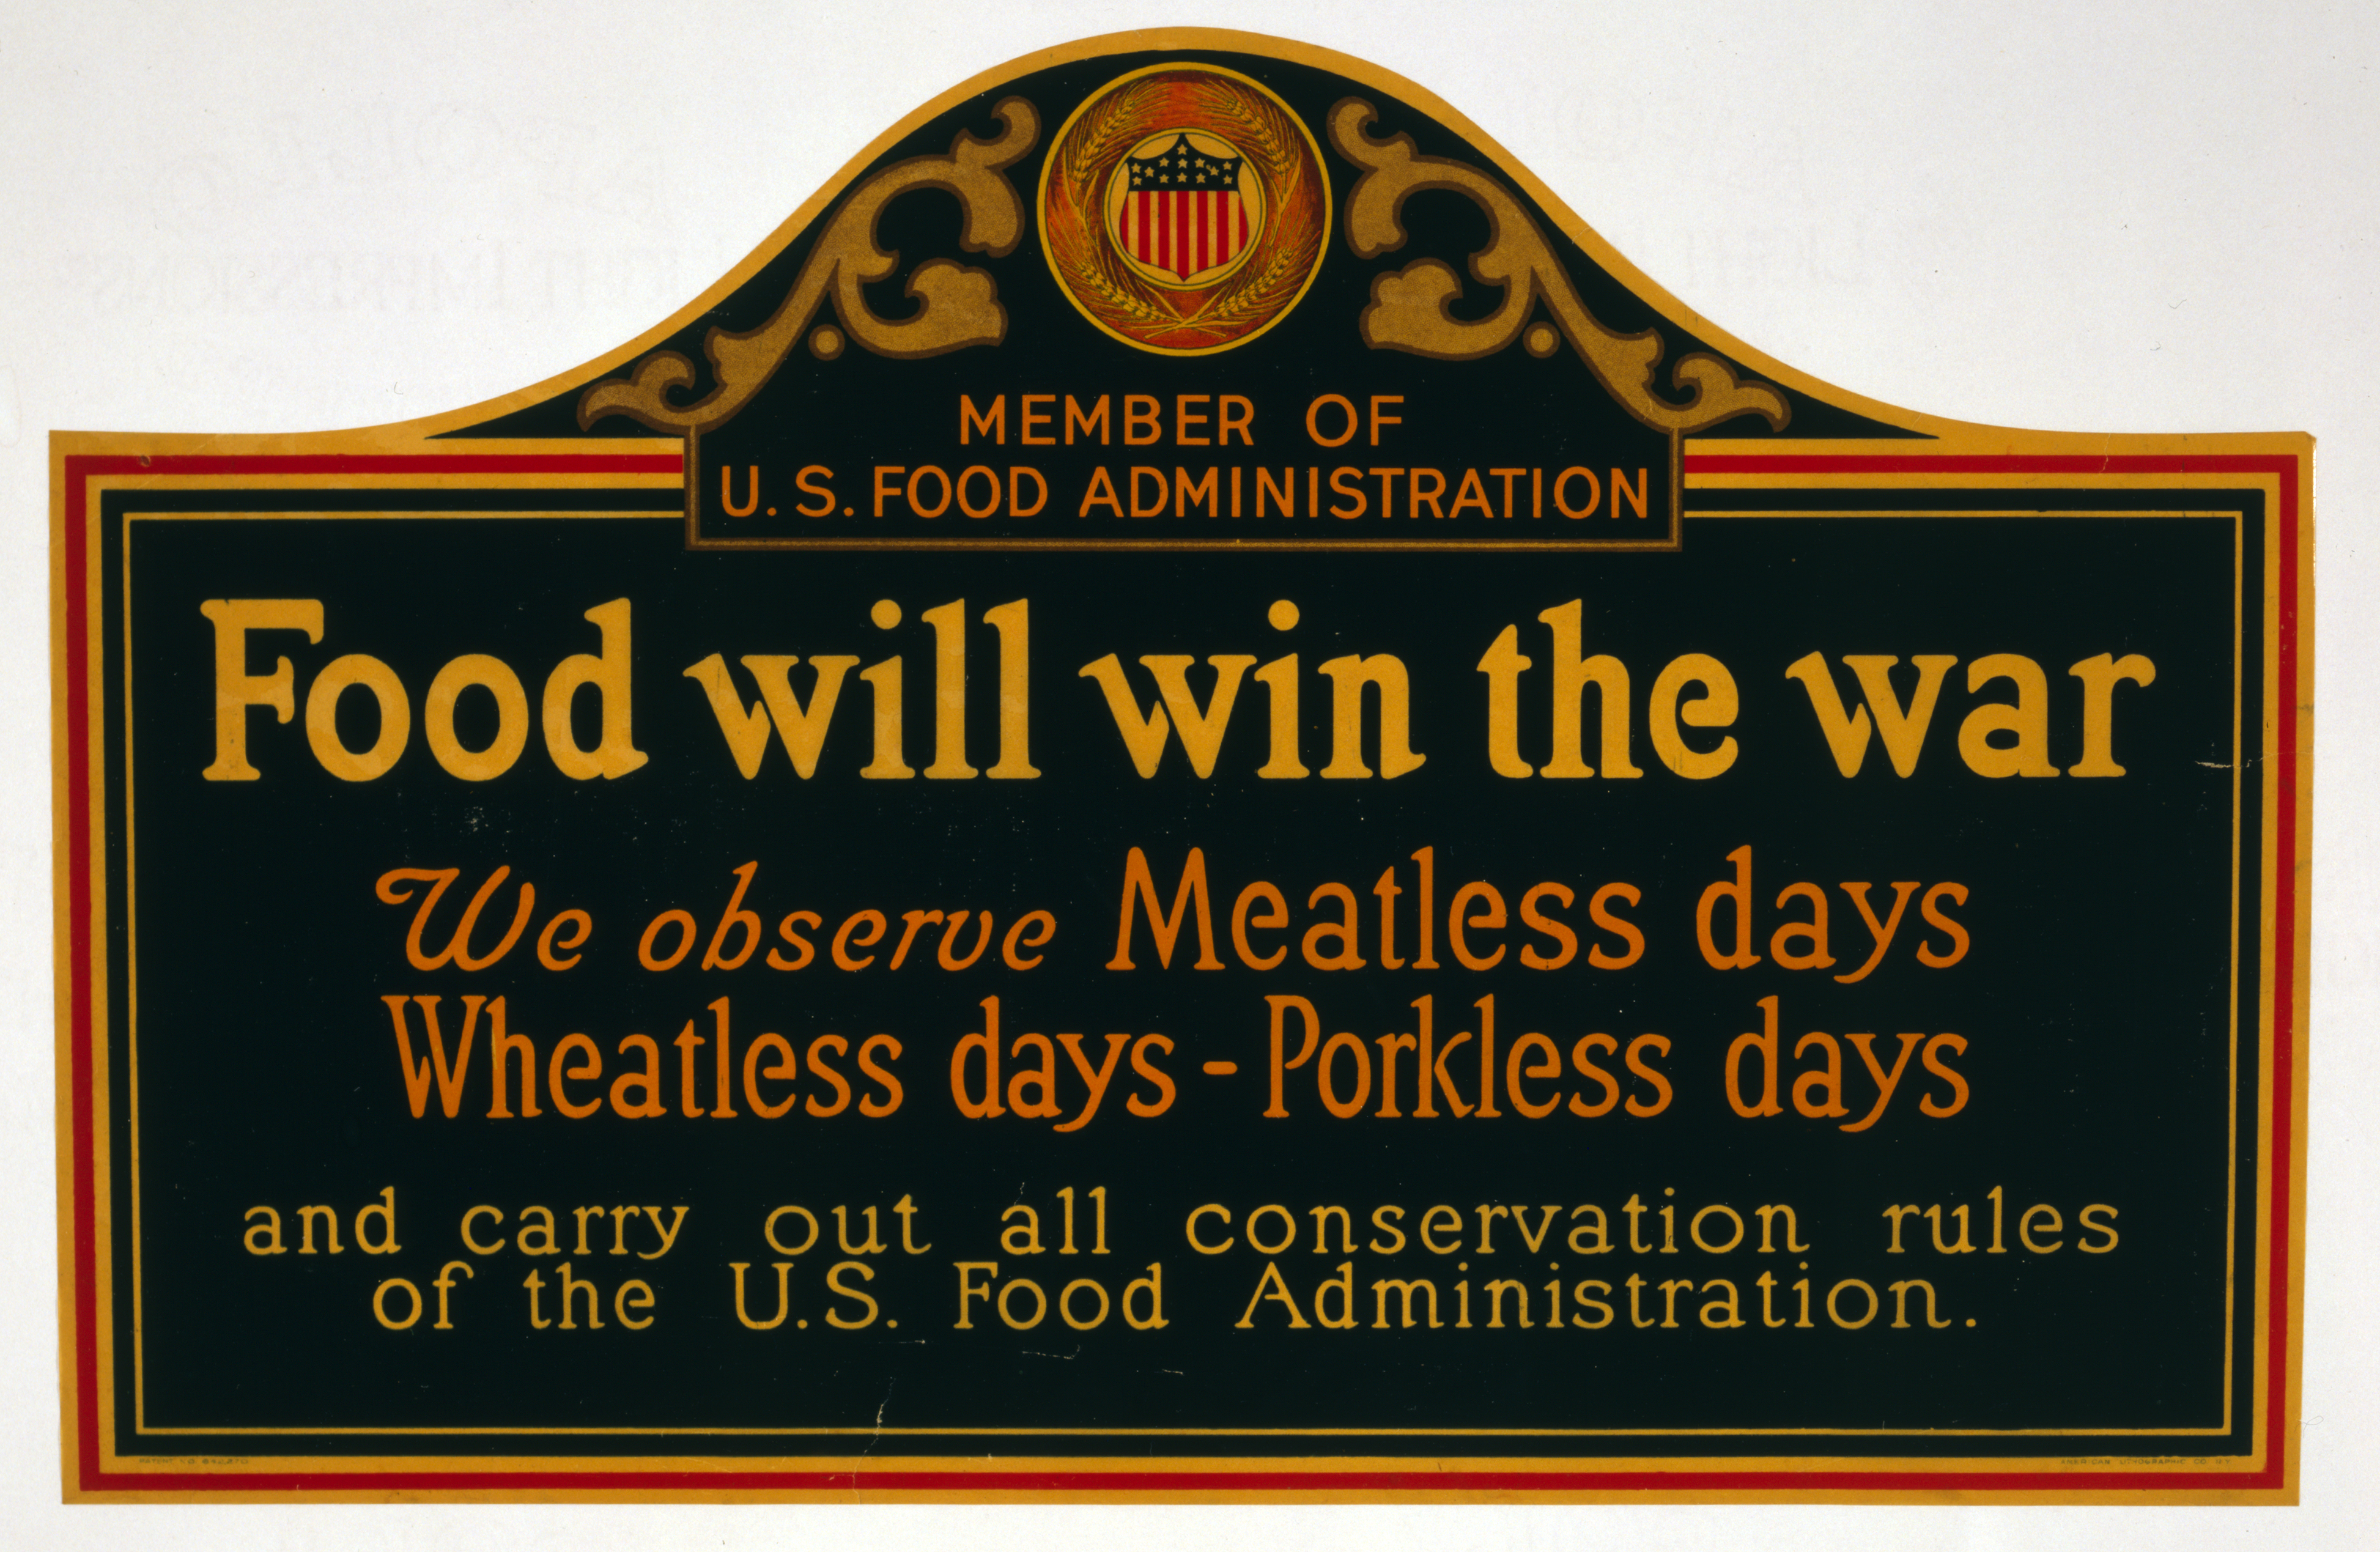 Meatless, wheatless, and porkless